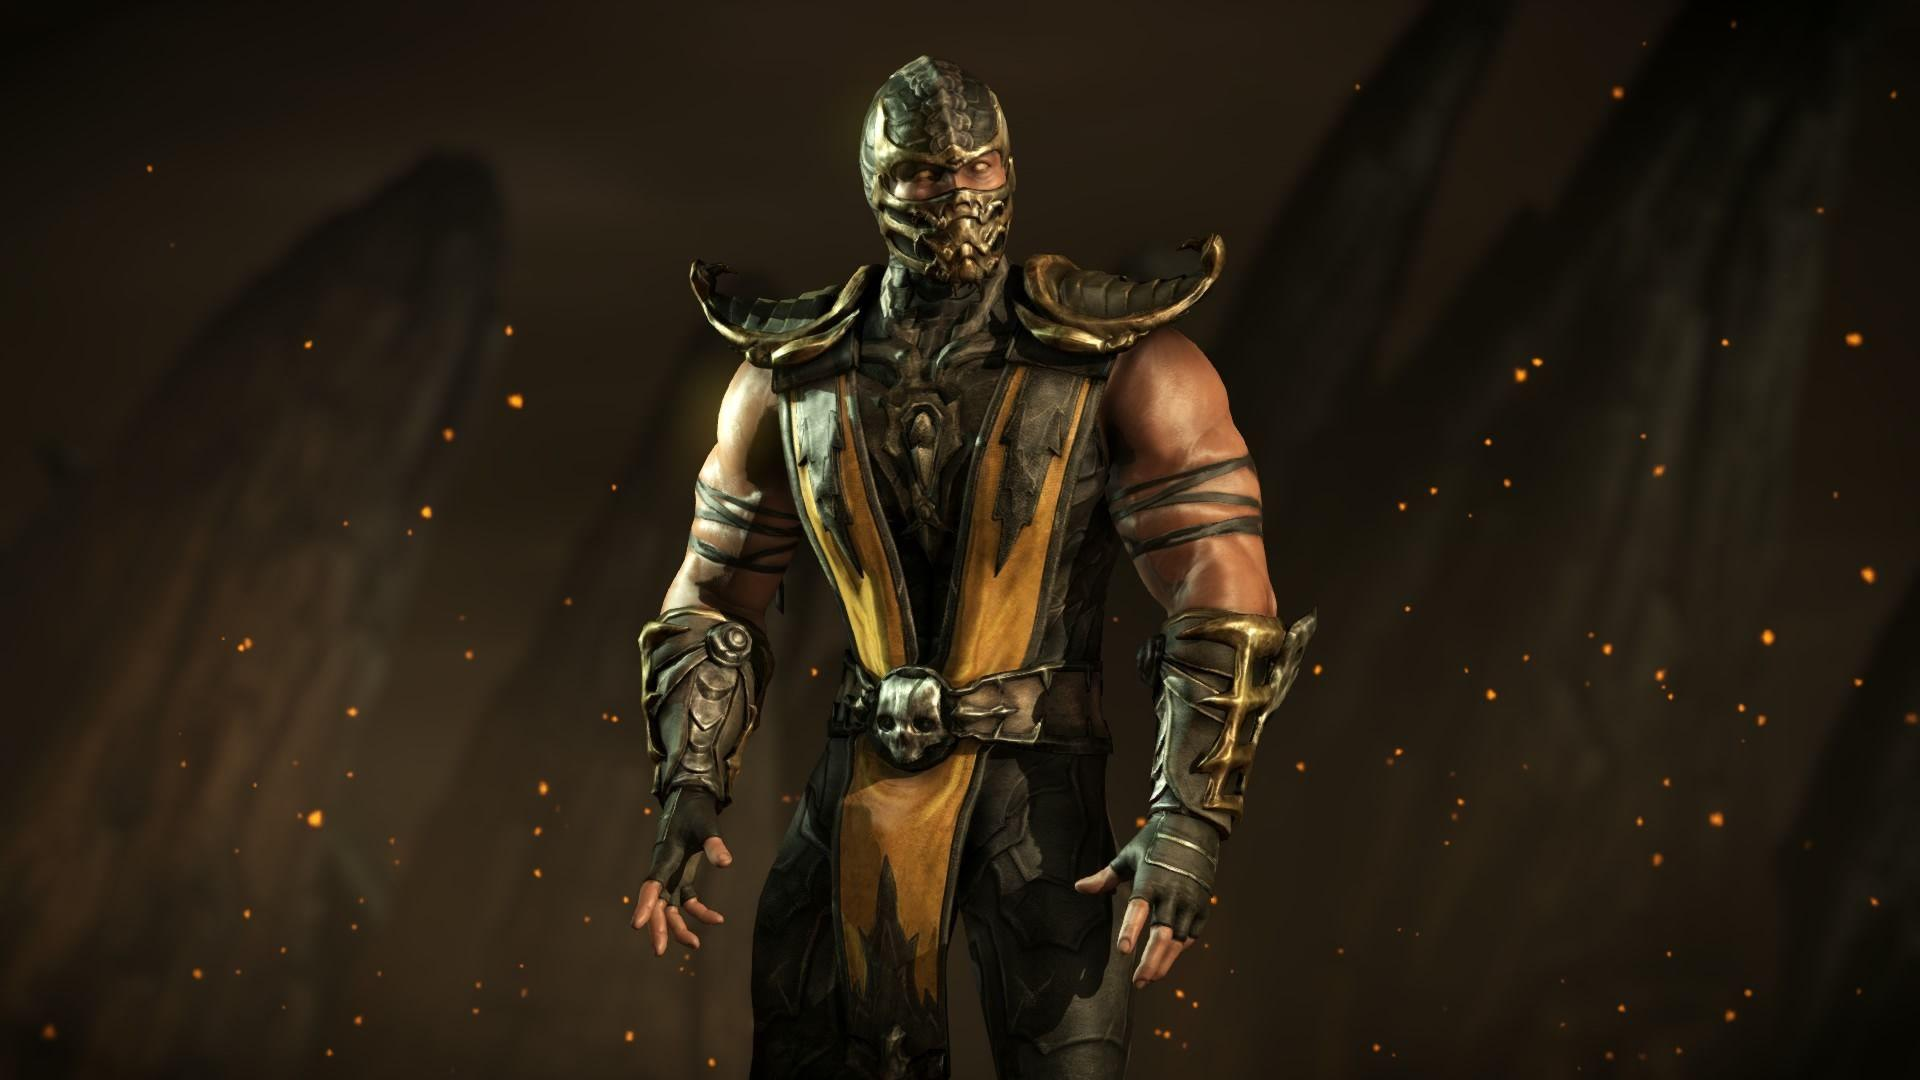 Mortal Kombat X:Scorpion 02 by Kabukiart157